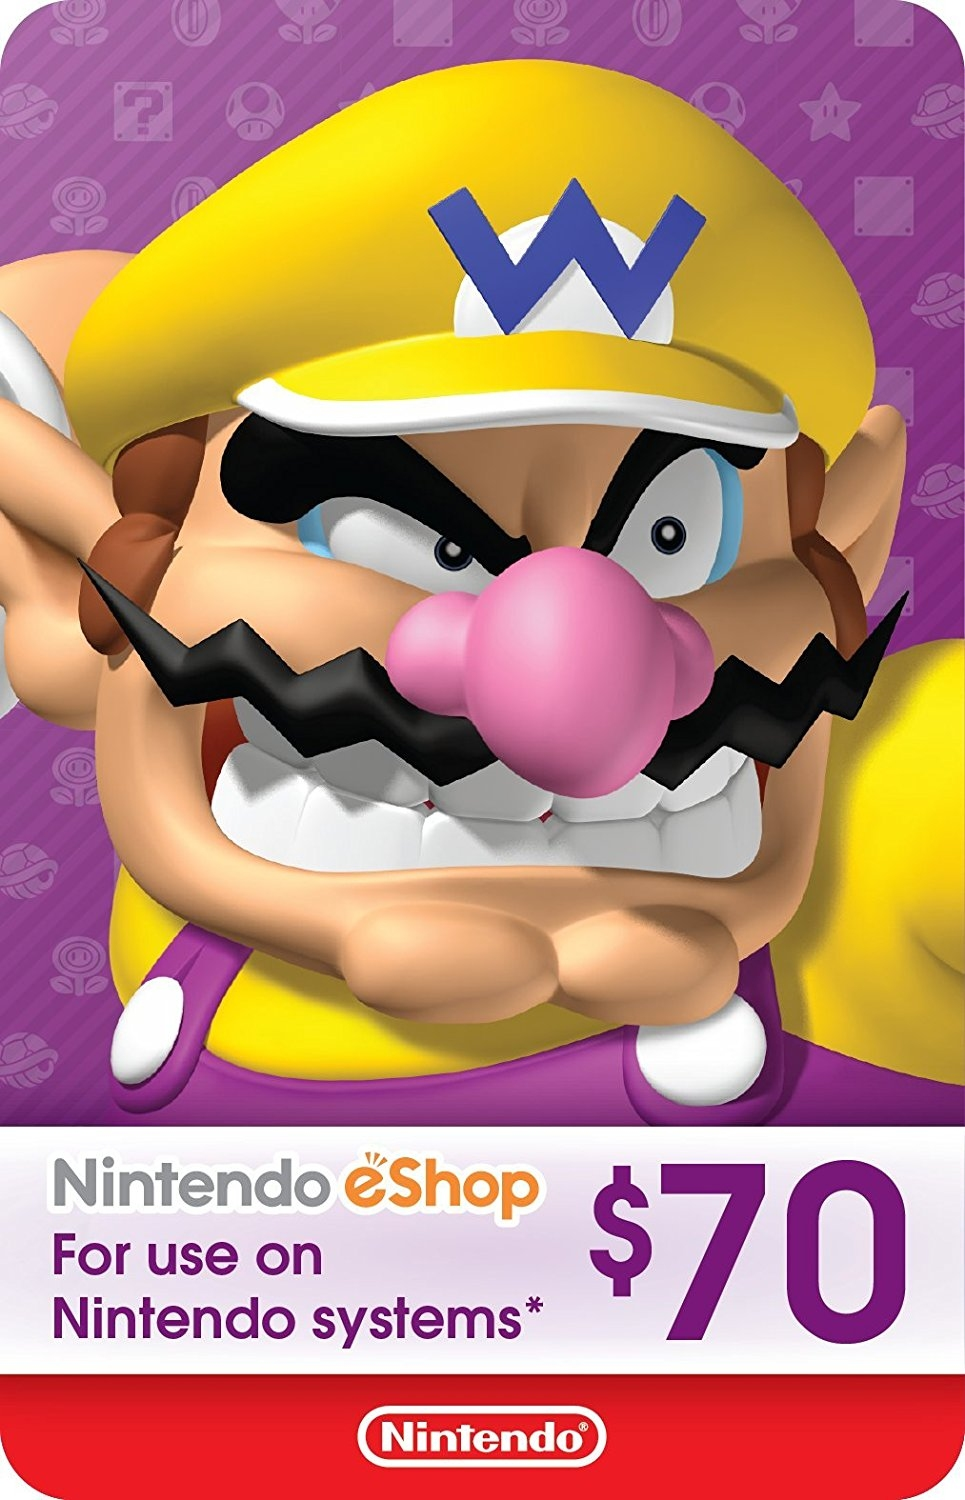 nintendo eshop gift card usd 70 s end 11 30 2019 6 16 pm